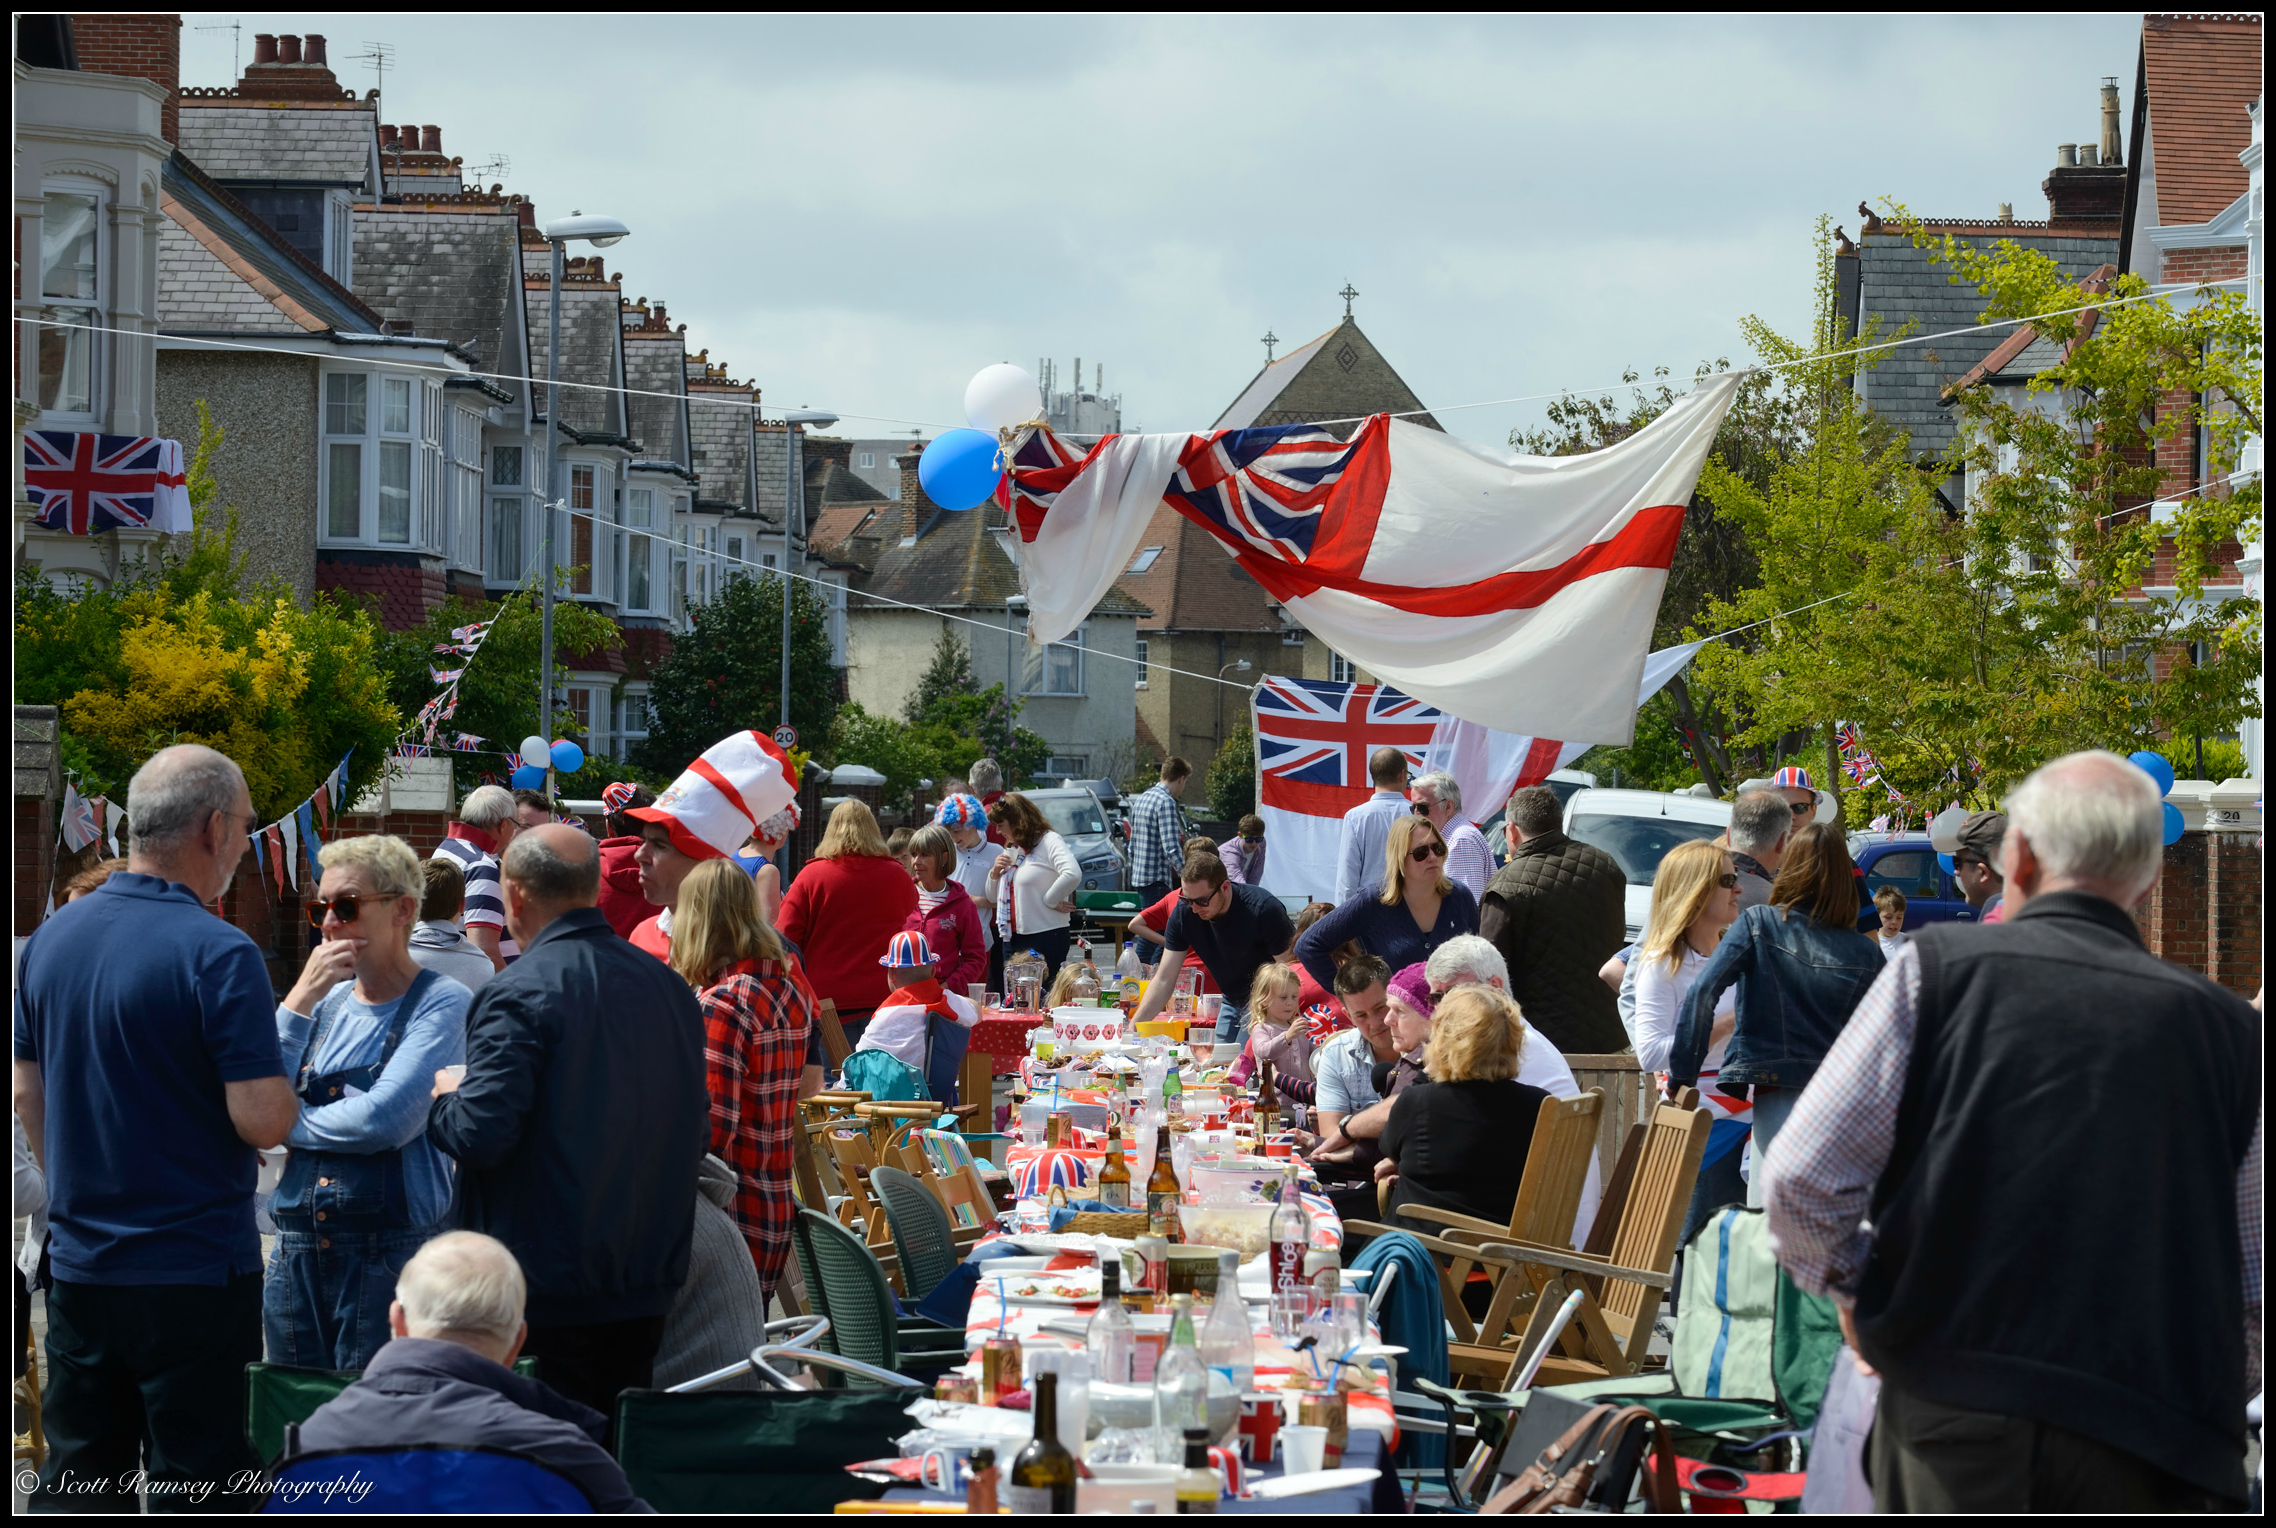 Residents set up tables and chairs and hold a streetparty outside their homes in Nettlecombe Avenue, Southsea, Portsmouth, UK during the VE Day 70th Anniversary. © Scott Ramsey Photography.